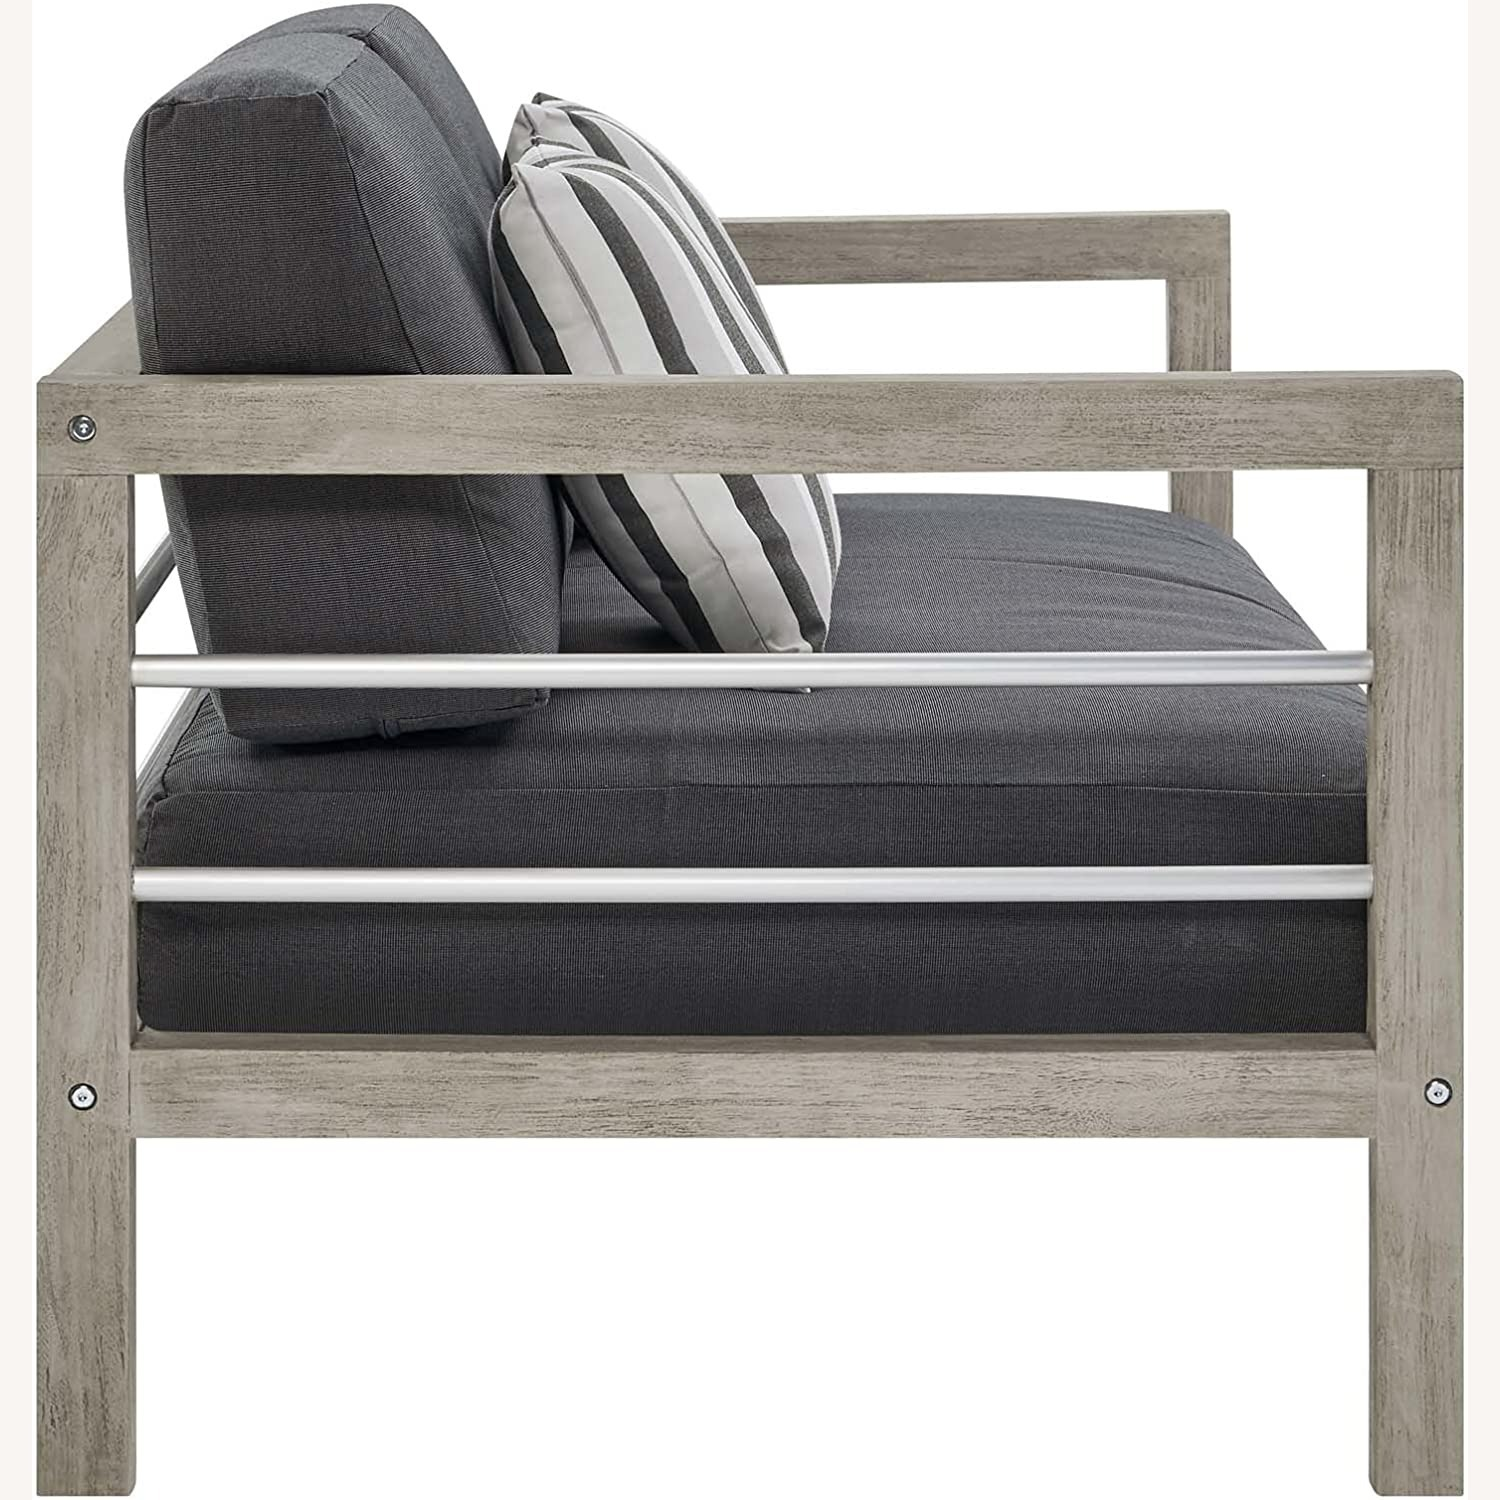 Outdoor Patio Set In Light Gray Wood Finish - image-4